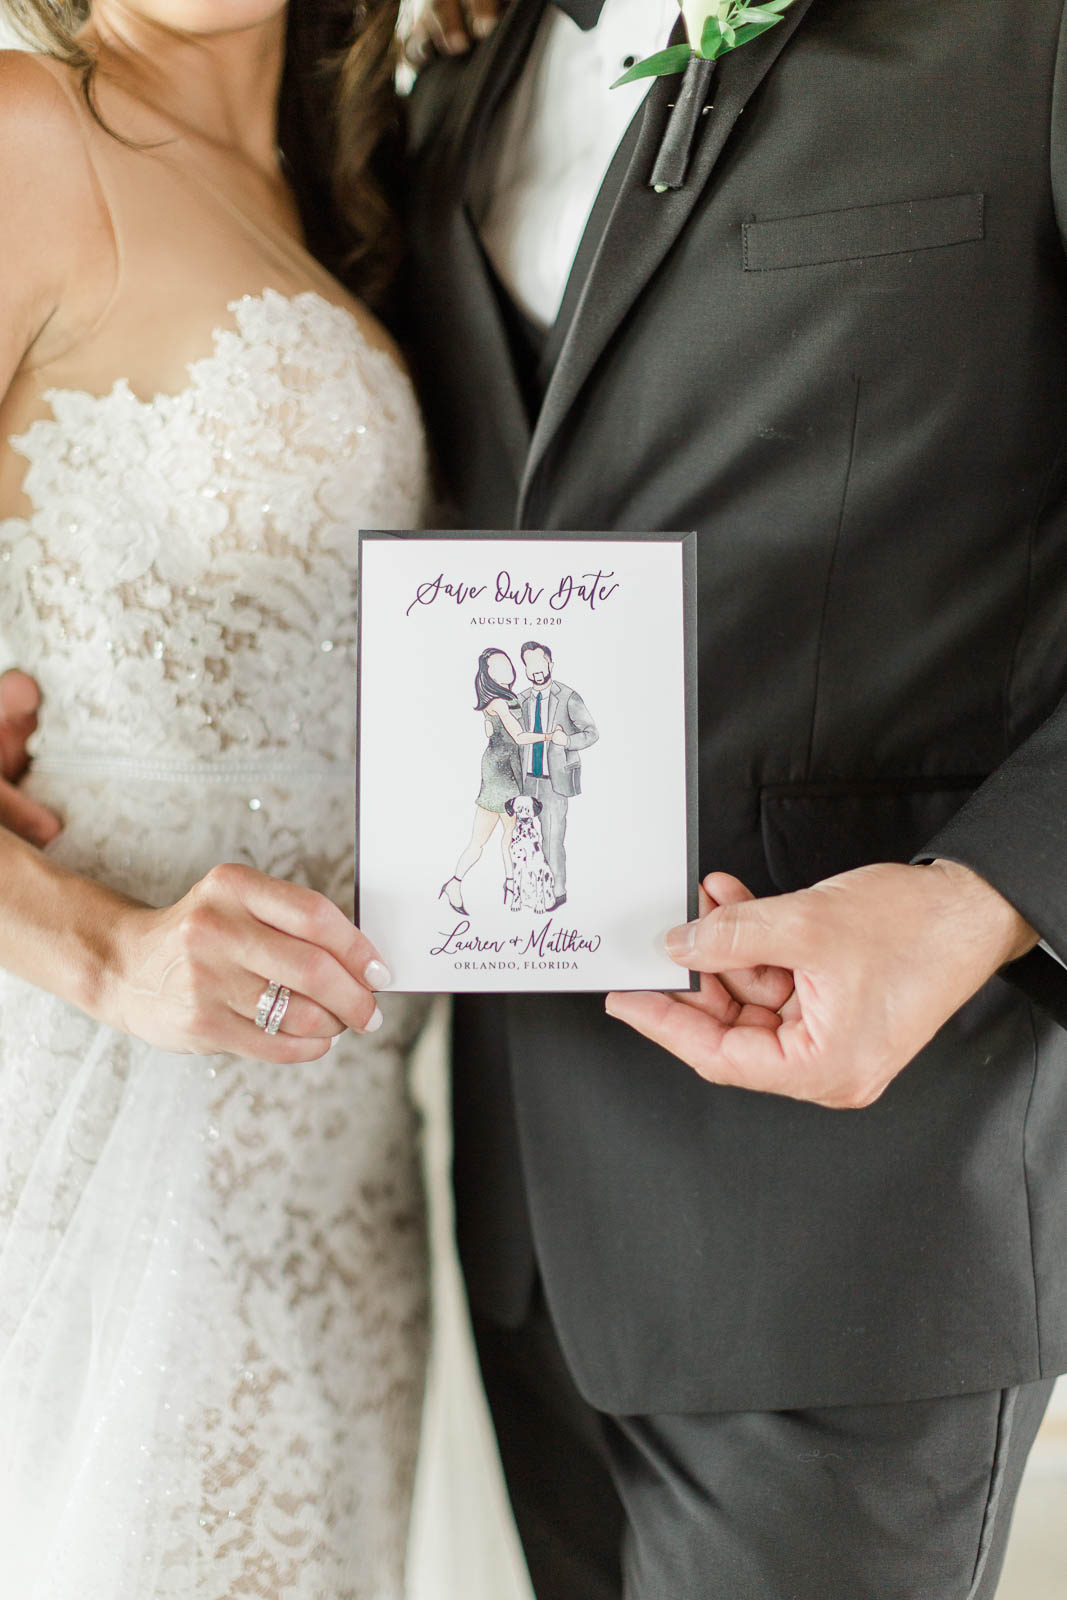 Bride and groom holding faceless portrait save the dates for wedding